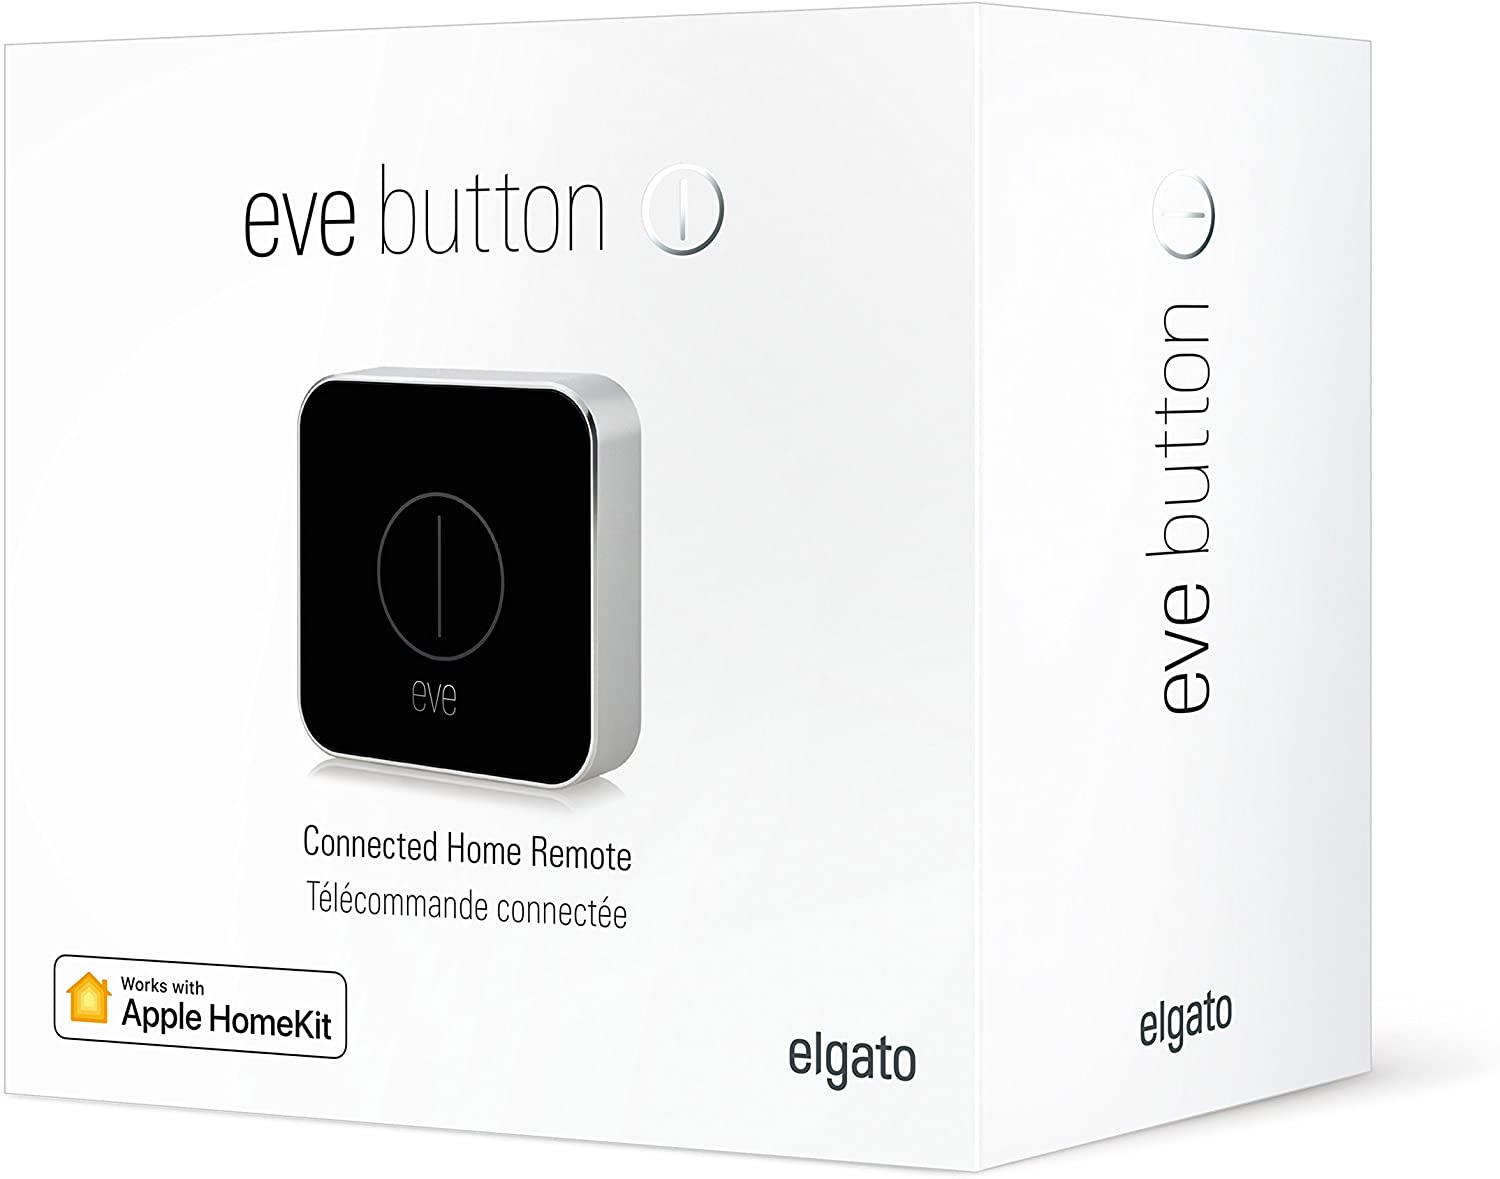 portable Eve Button Elgato 10EAU9901 Apple HomeKit easily command accessories and scenes Connected Home Remote compact Bluetooth Low Energy